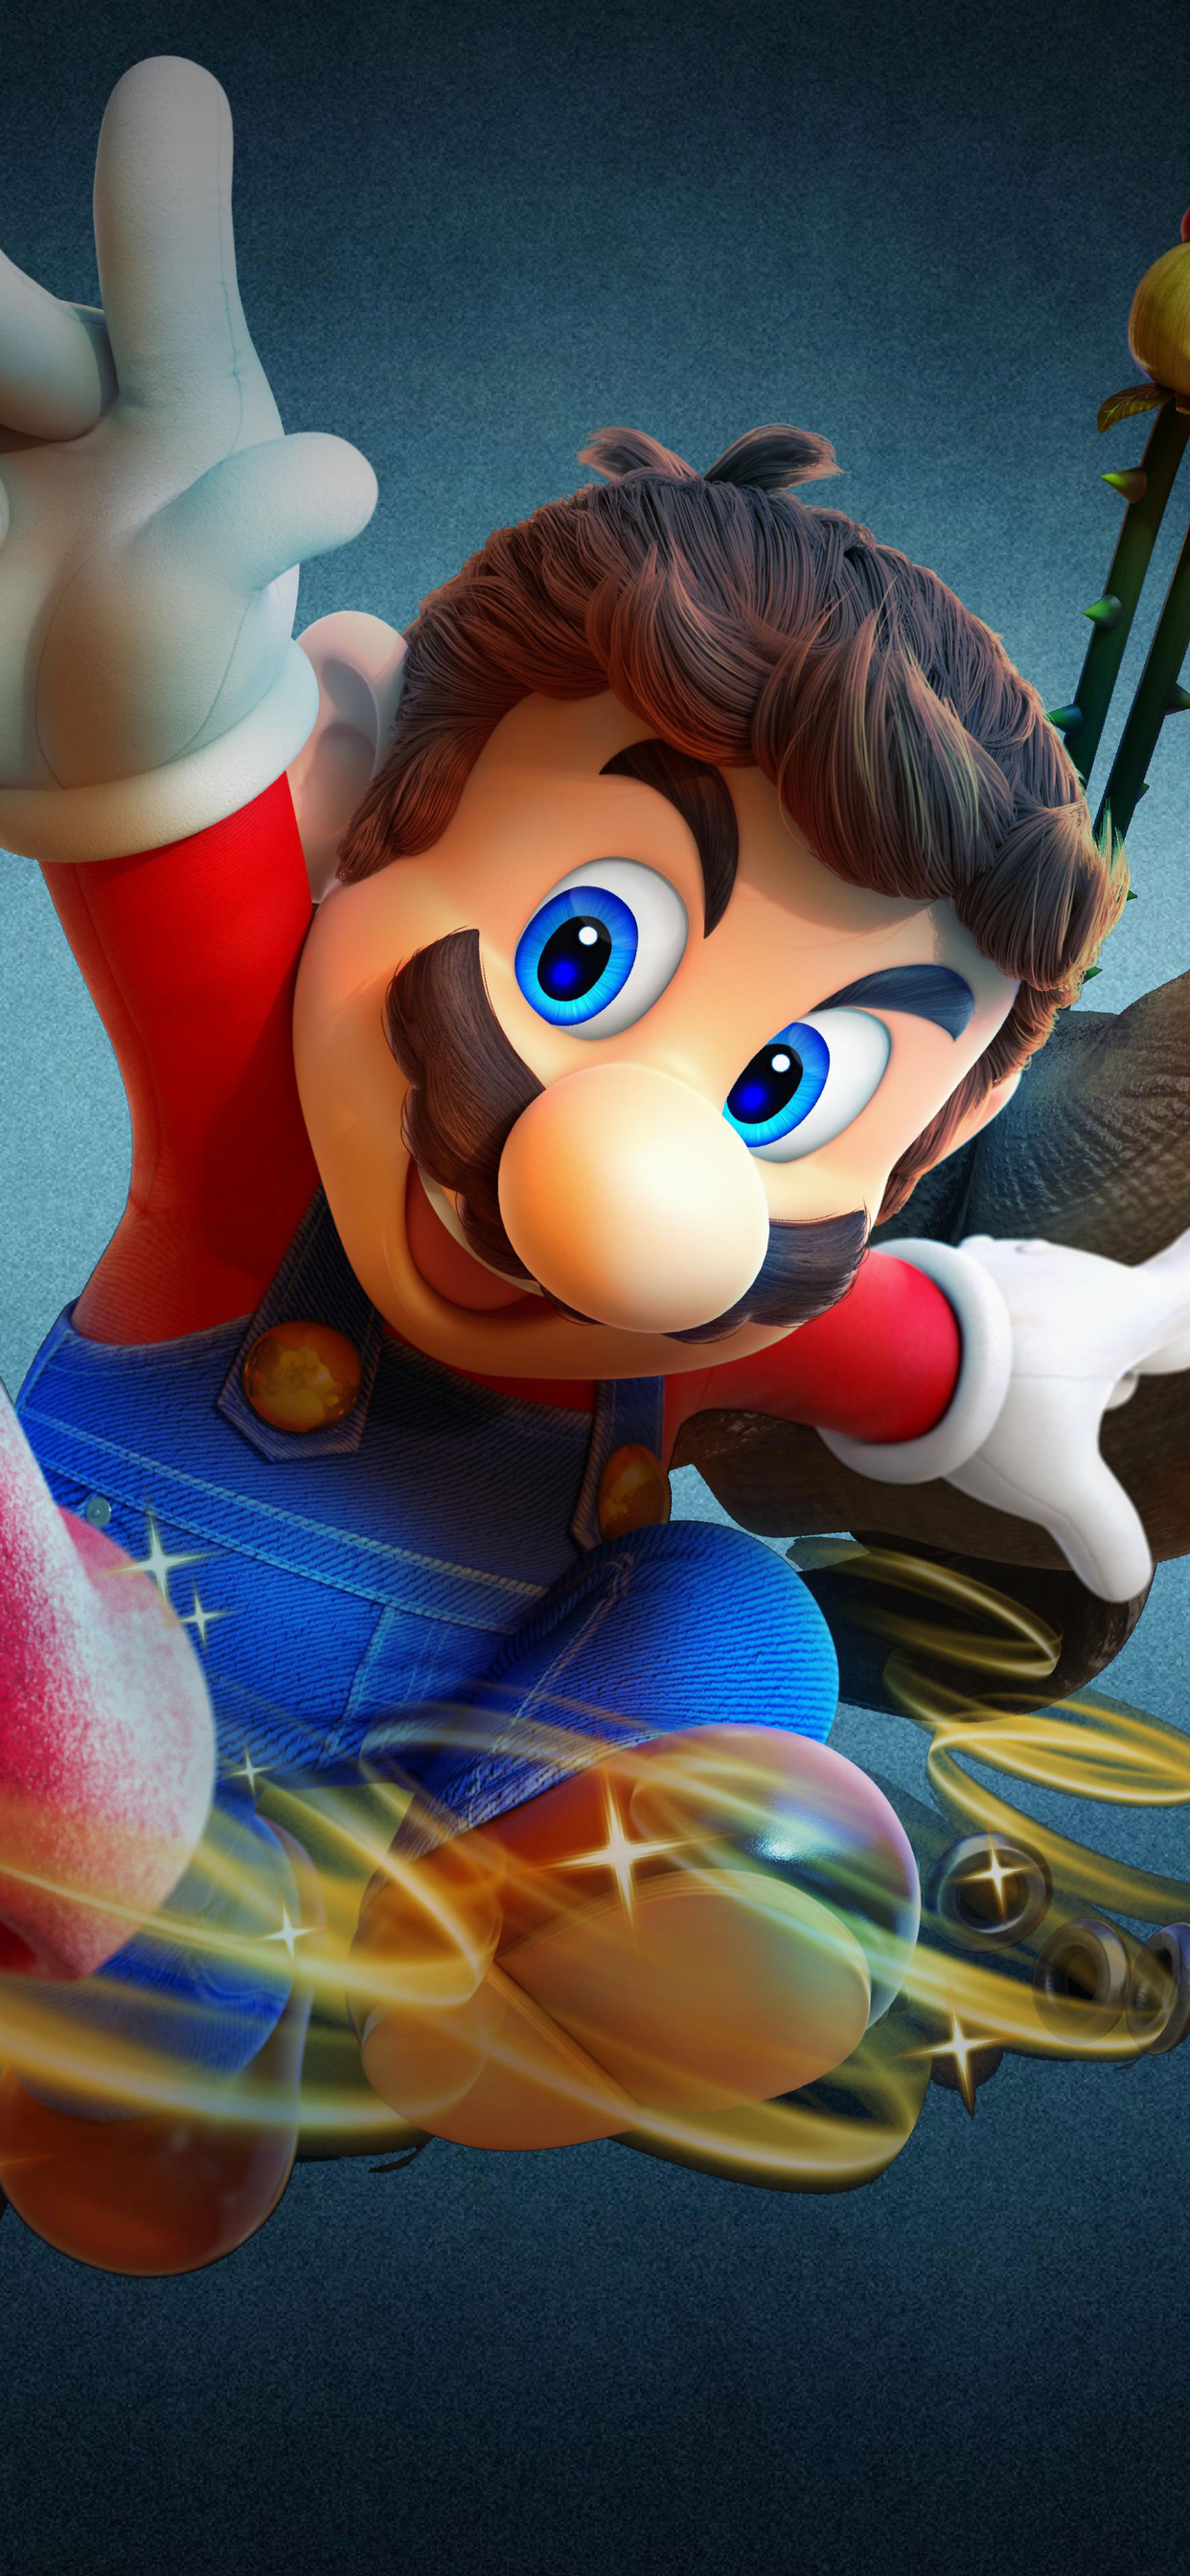 1242x2688 Super Mario Odyssey 8k Iphone Xs Max Hd 4k Wallpapers